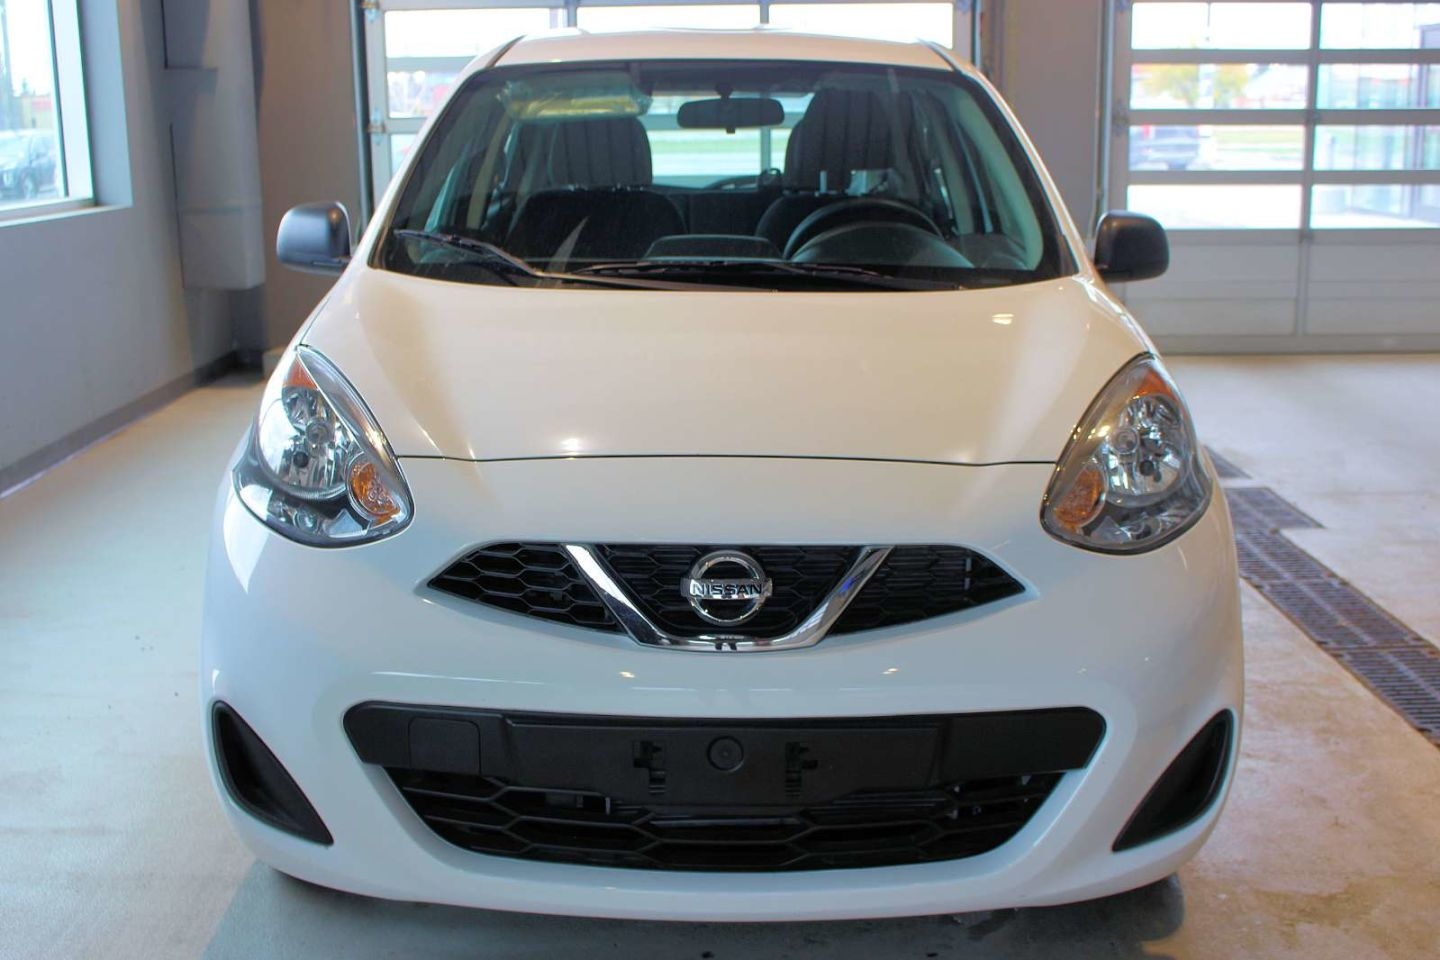 2019 Nissan Micra S for sale in Spruce Grove, Alberta